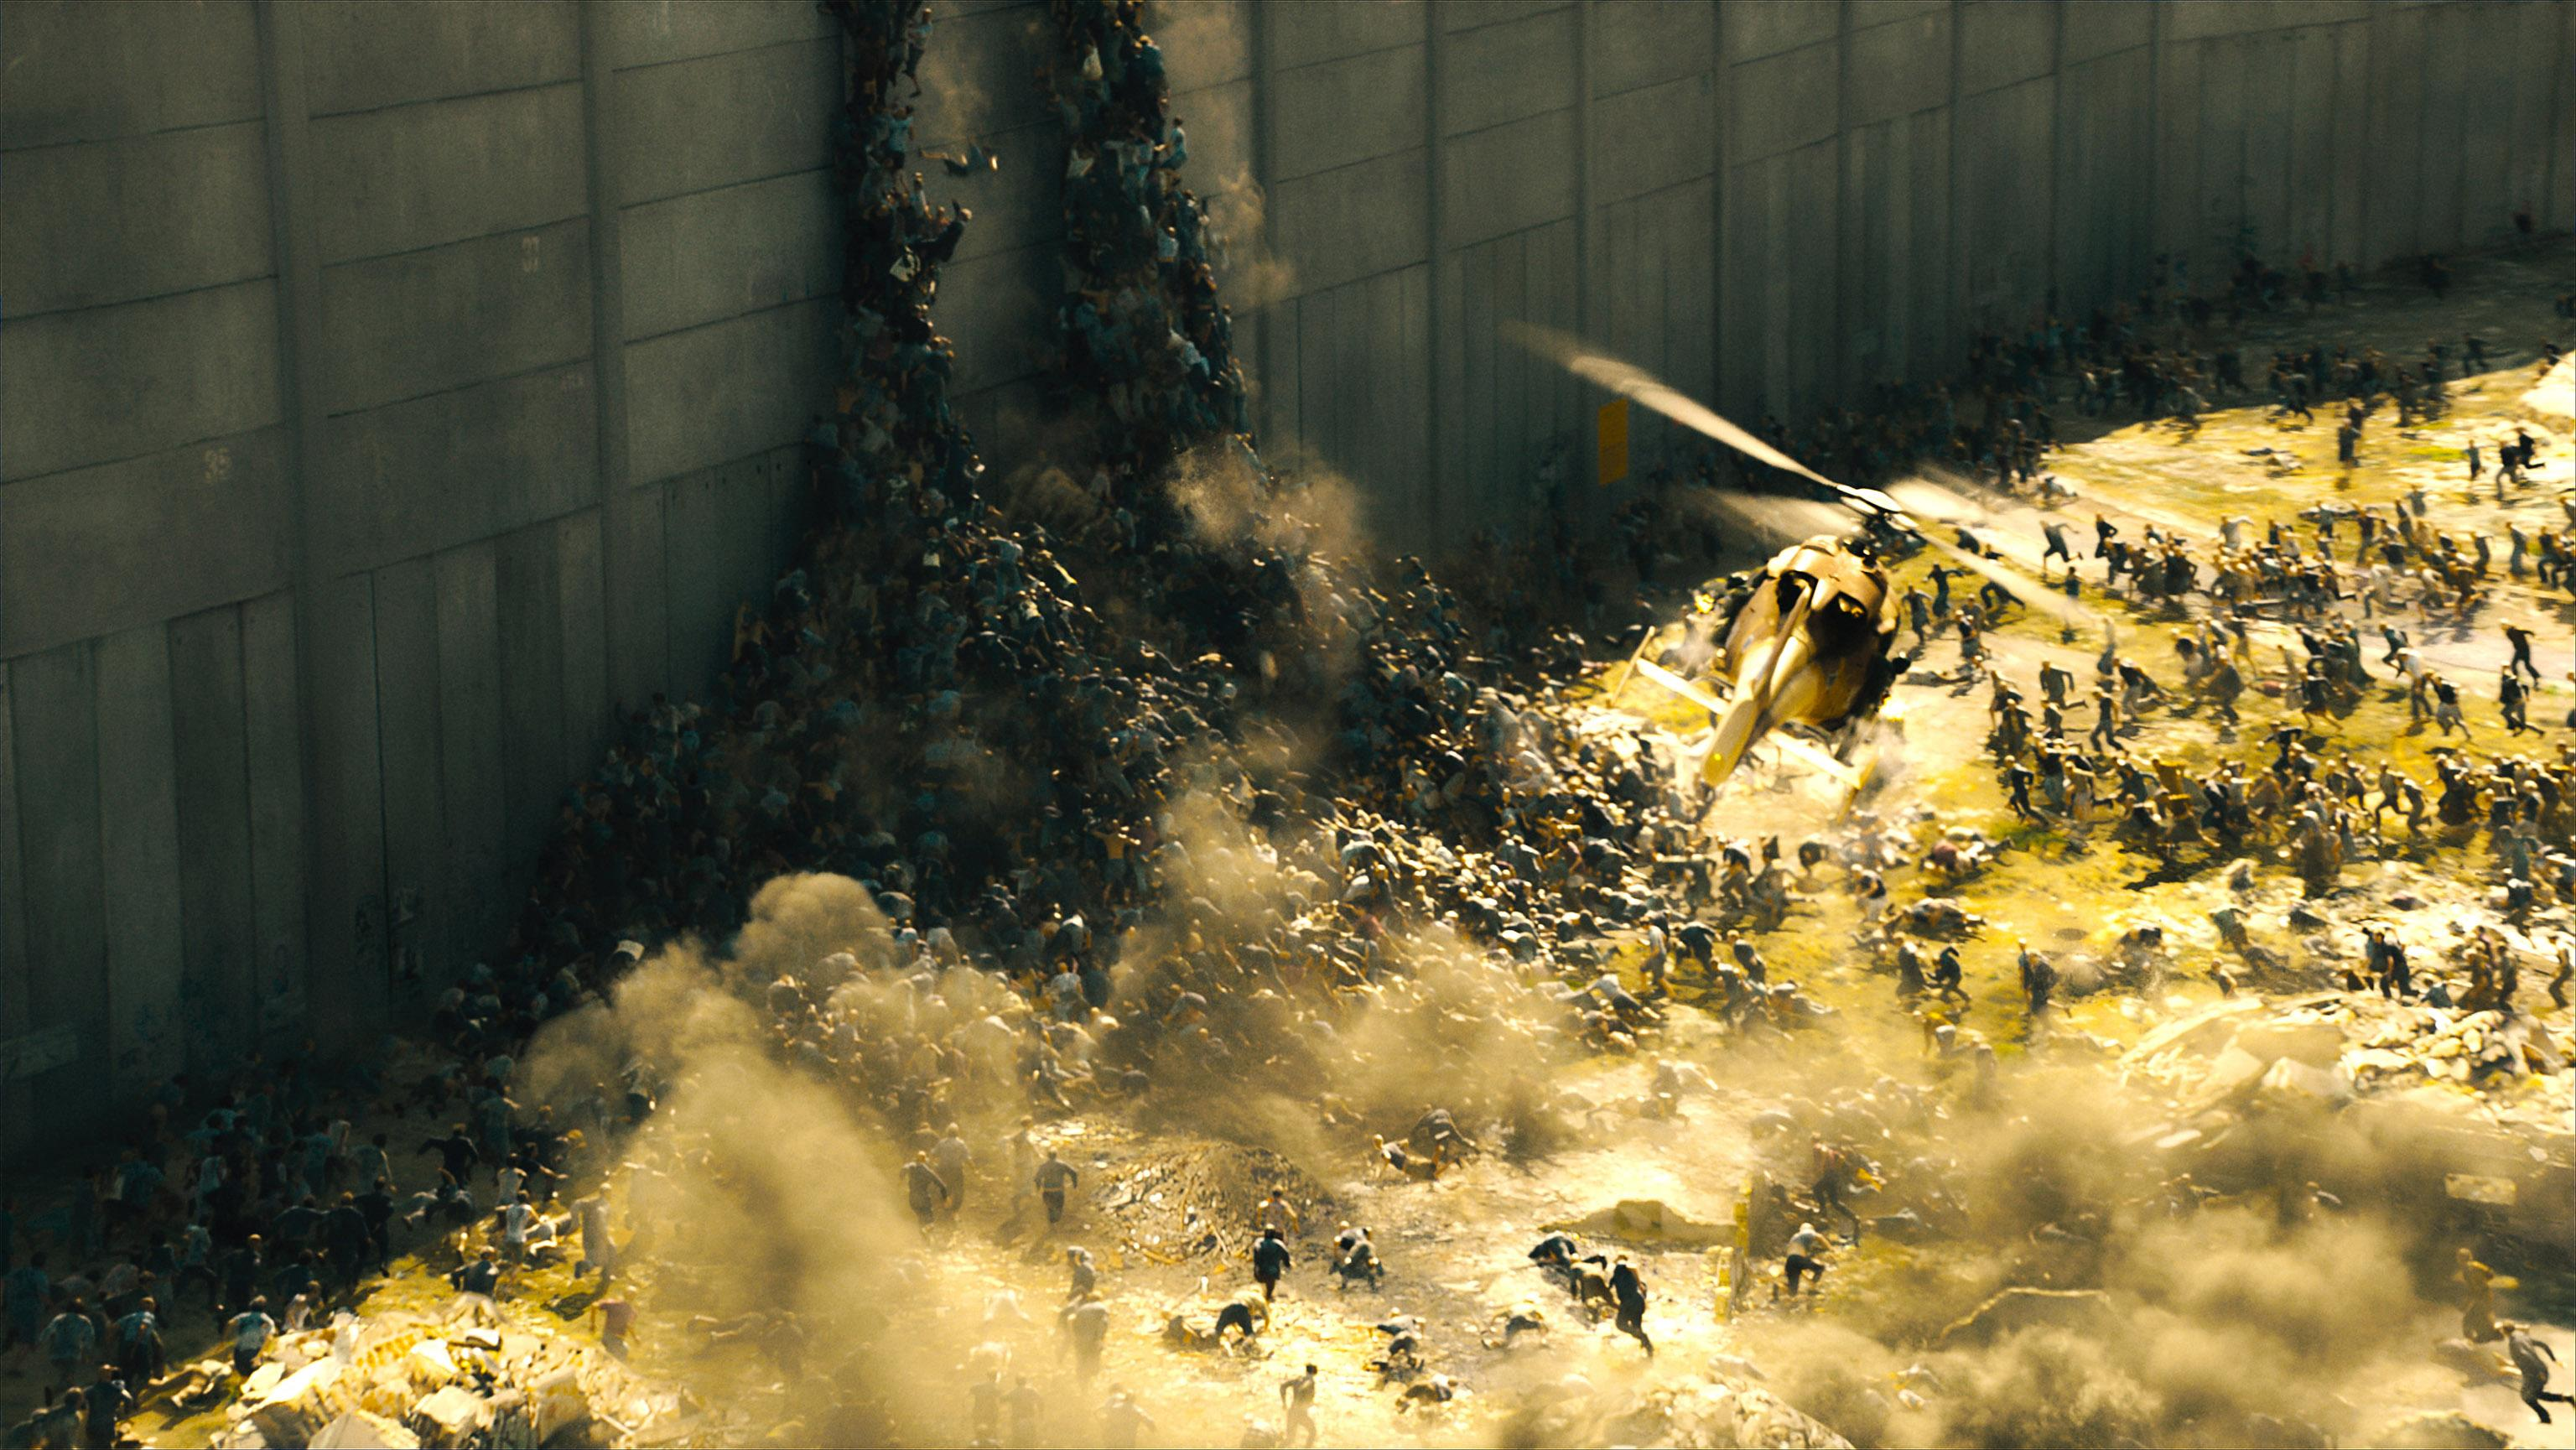 world war z as a sociopolitical Zombie-fest of mayhem and little else world war z earns four stars for two attributes it is almost non-stop action for those who enjoy adrenaline-depleting films of the characters within.